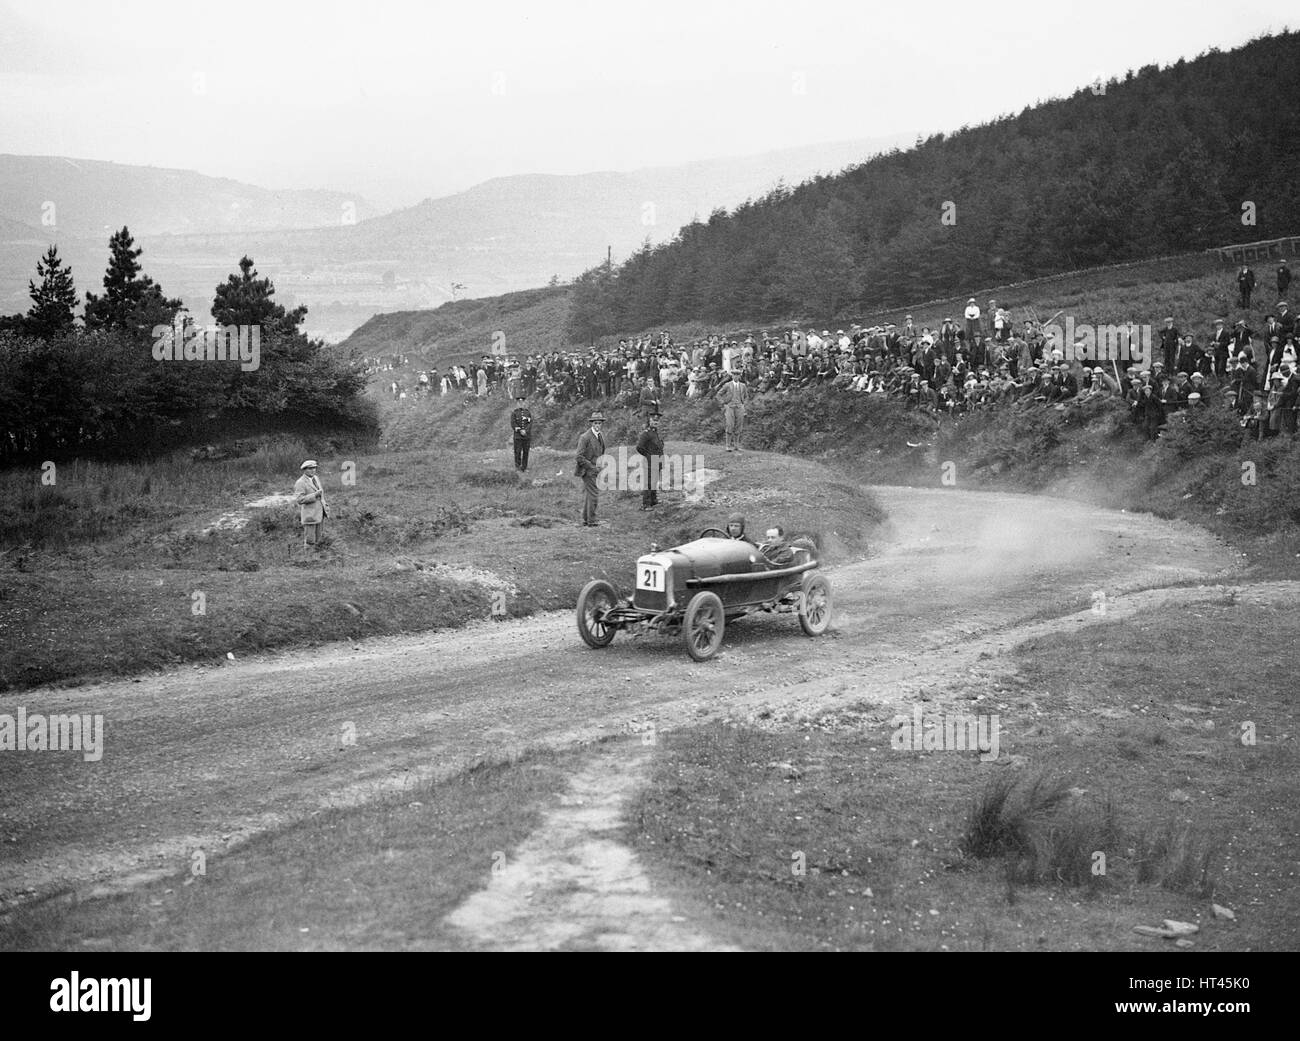 Aston Martin Bunny of Frank B Halford competing in the Caerphilly Hillclimb, Wales, 1923. Artist: Bill Brunell. - Stock Image